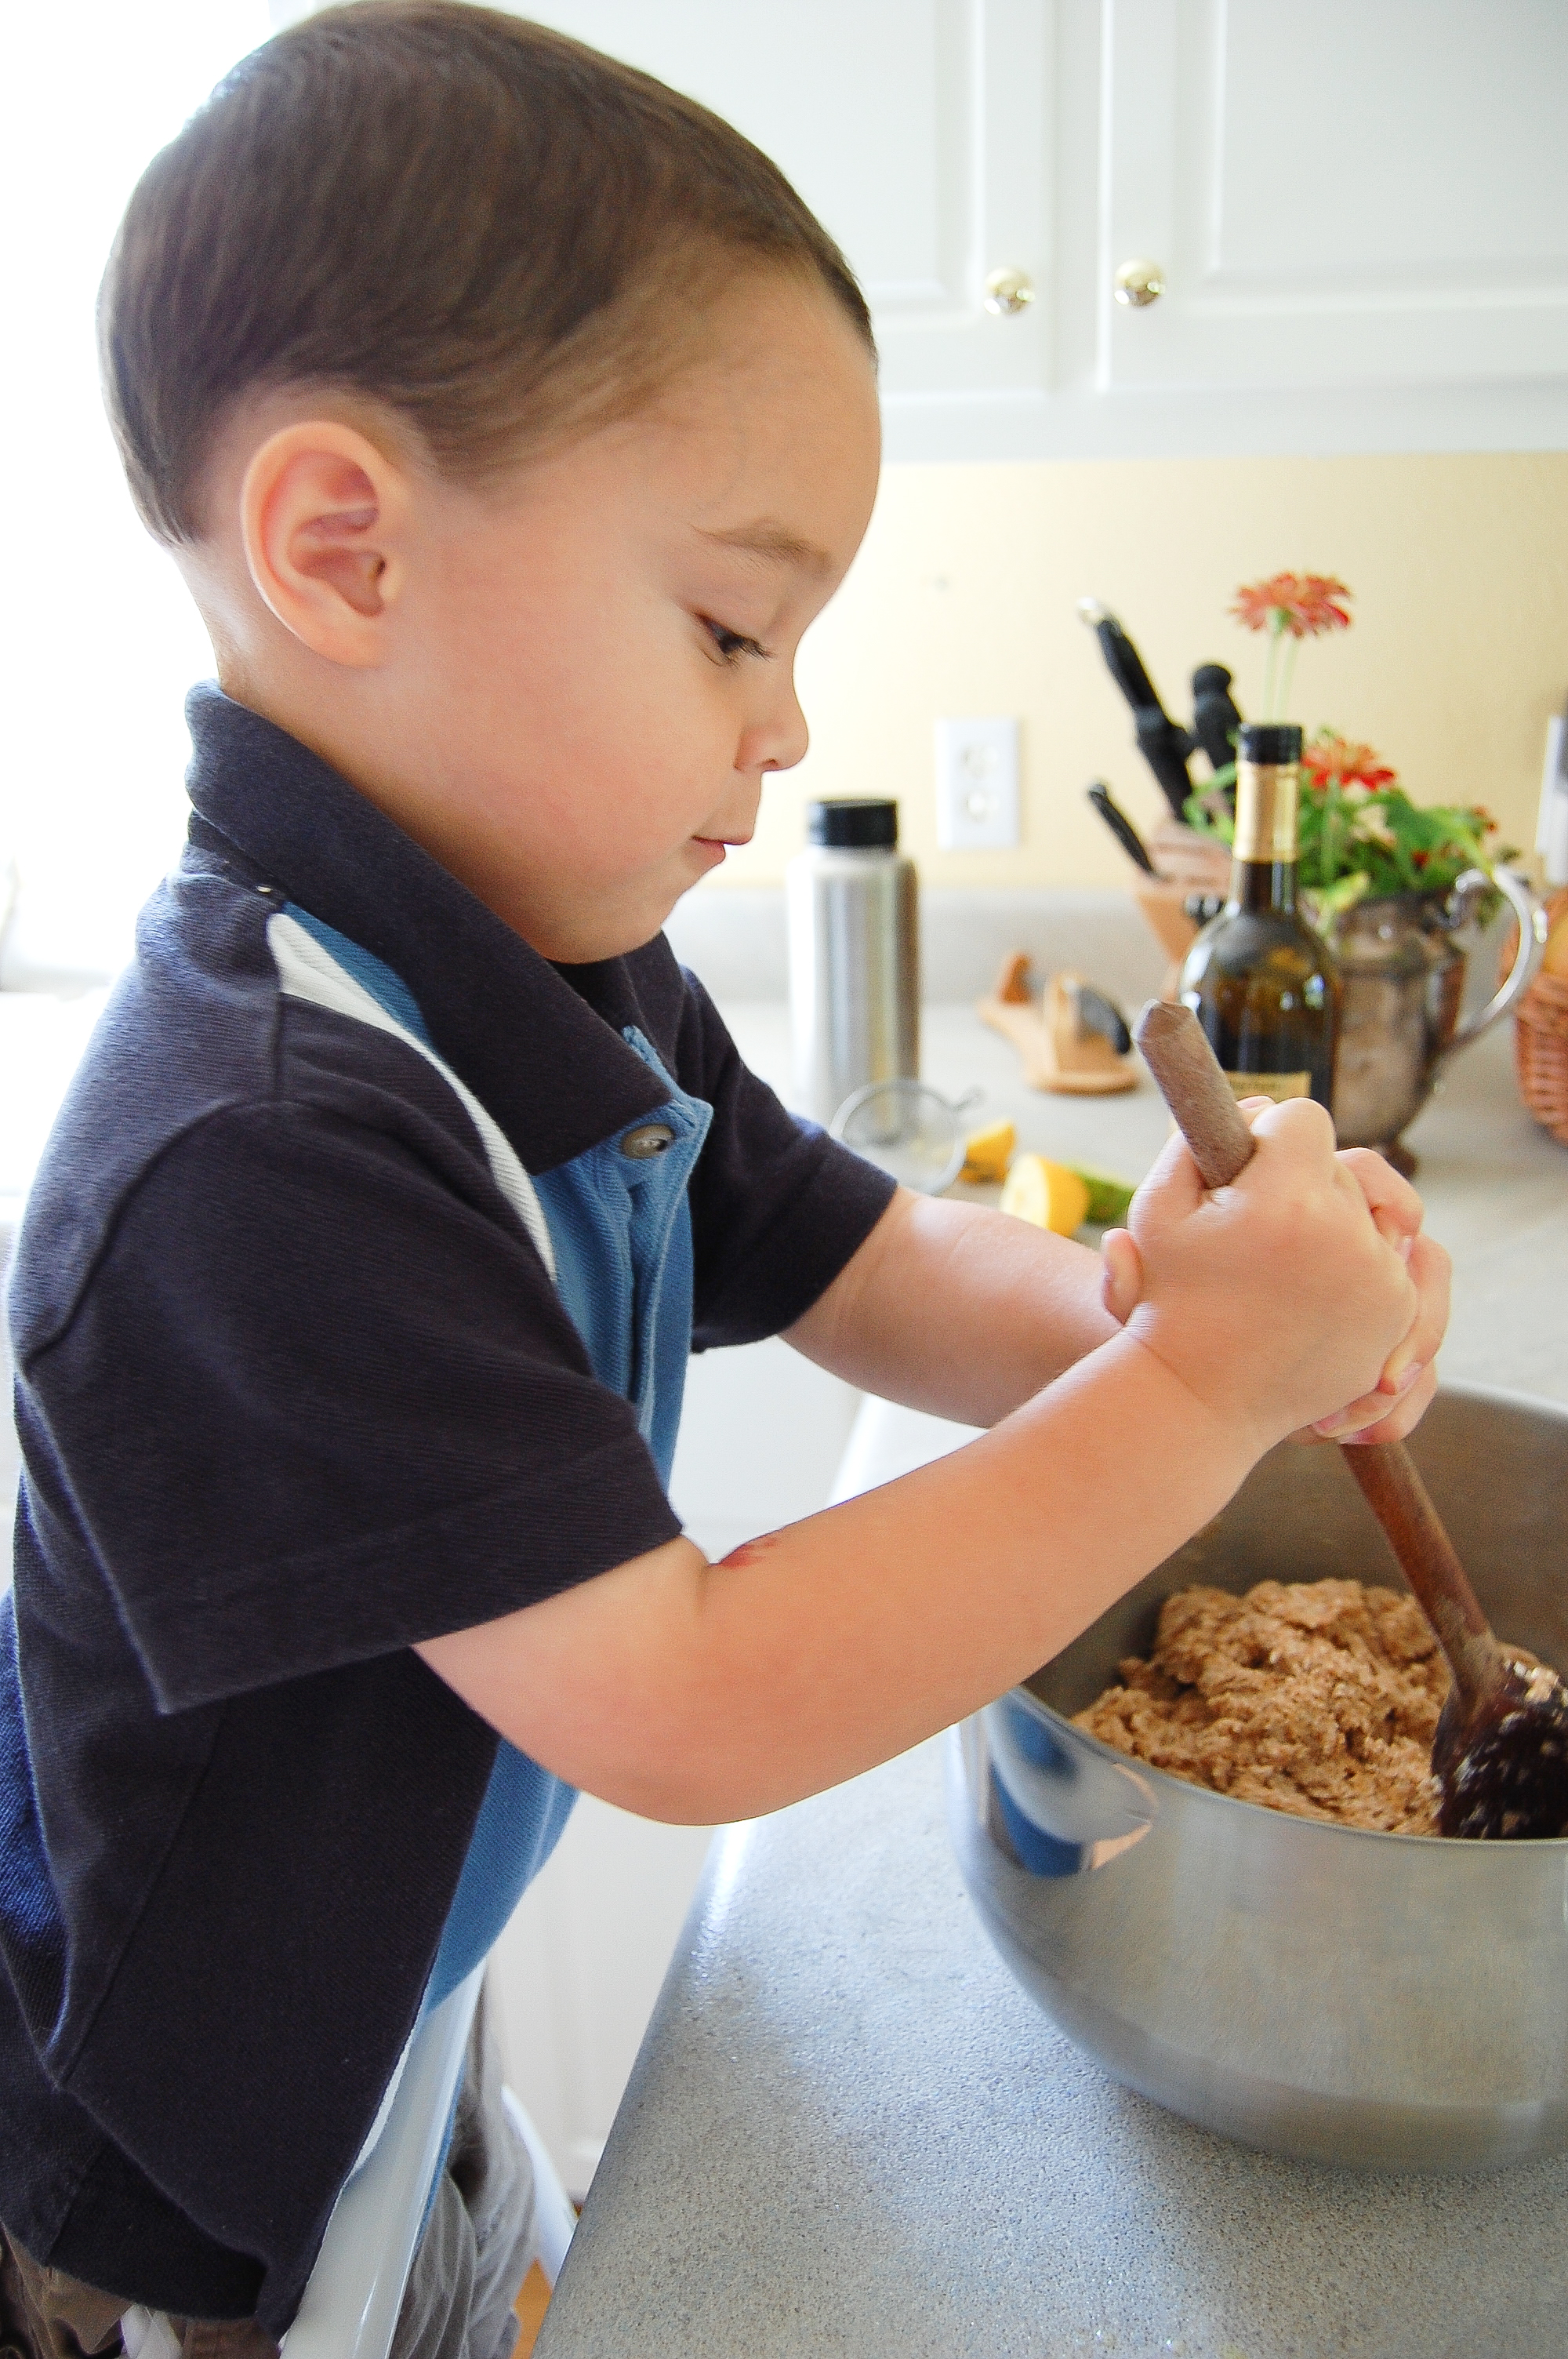 Aug 2010 - Abraham (2 almost 3) helps Mommy make homemade organic dough for all kinds of yummy things to eat